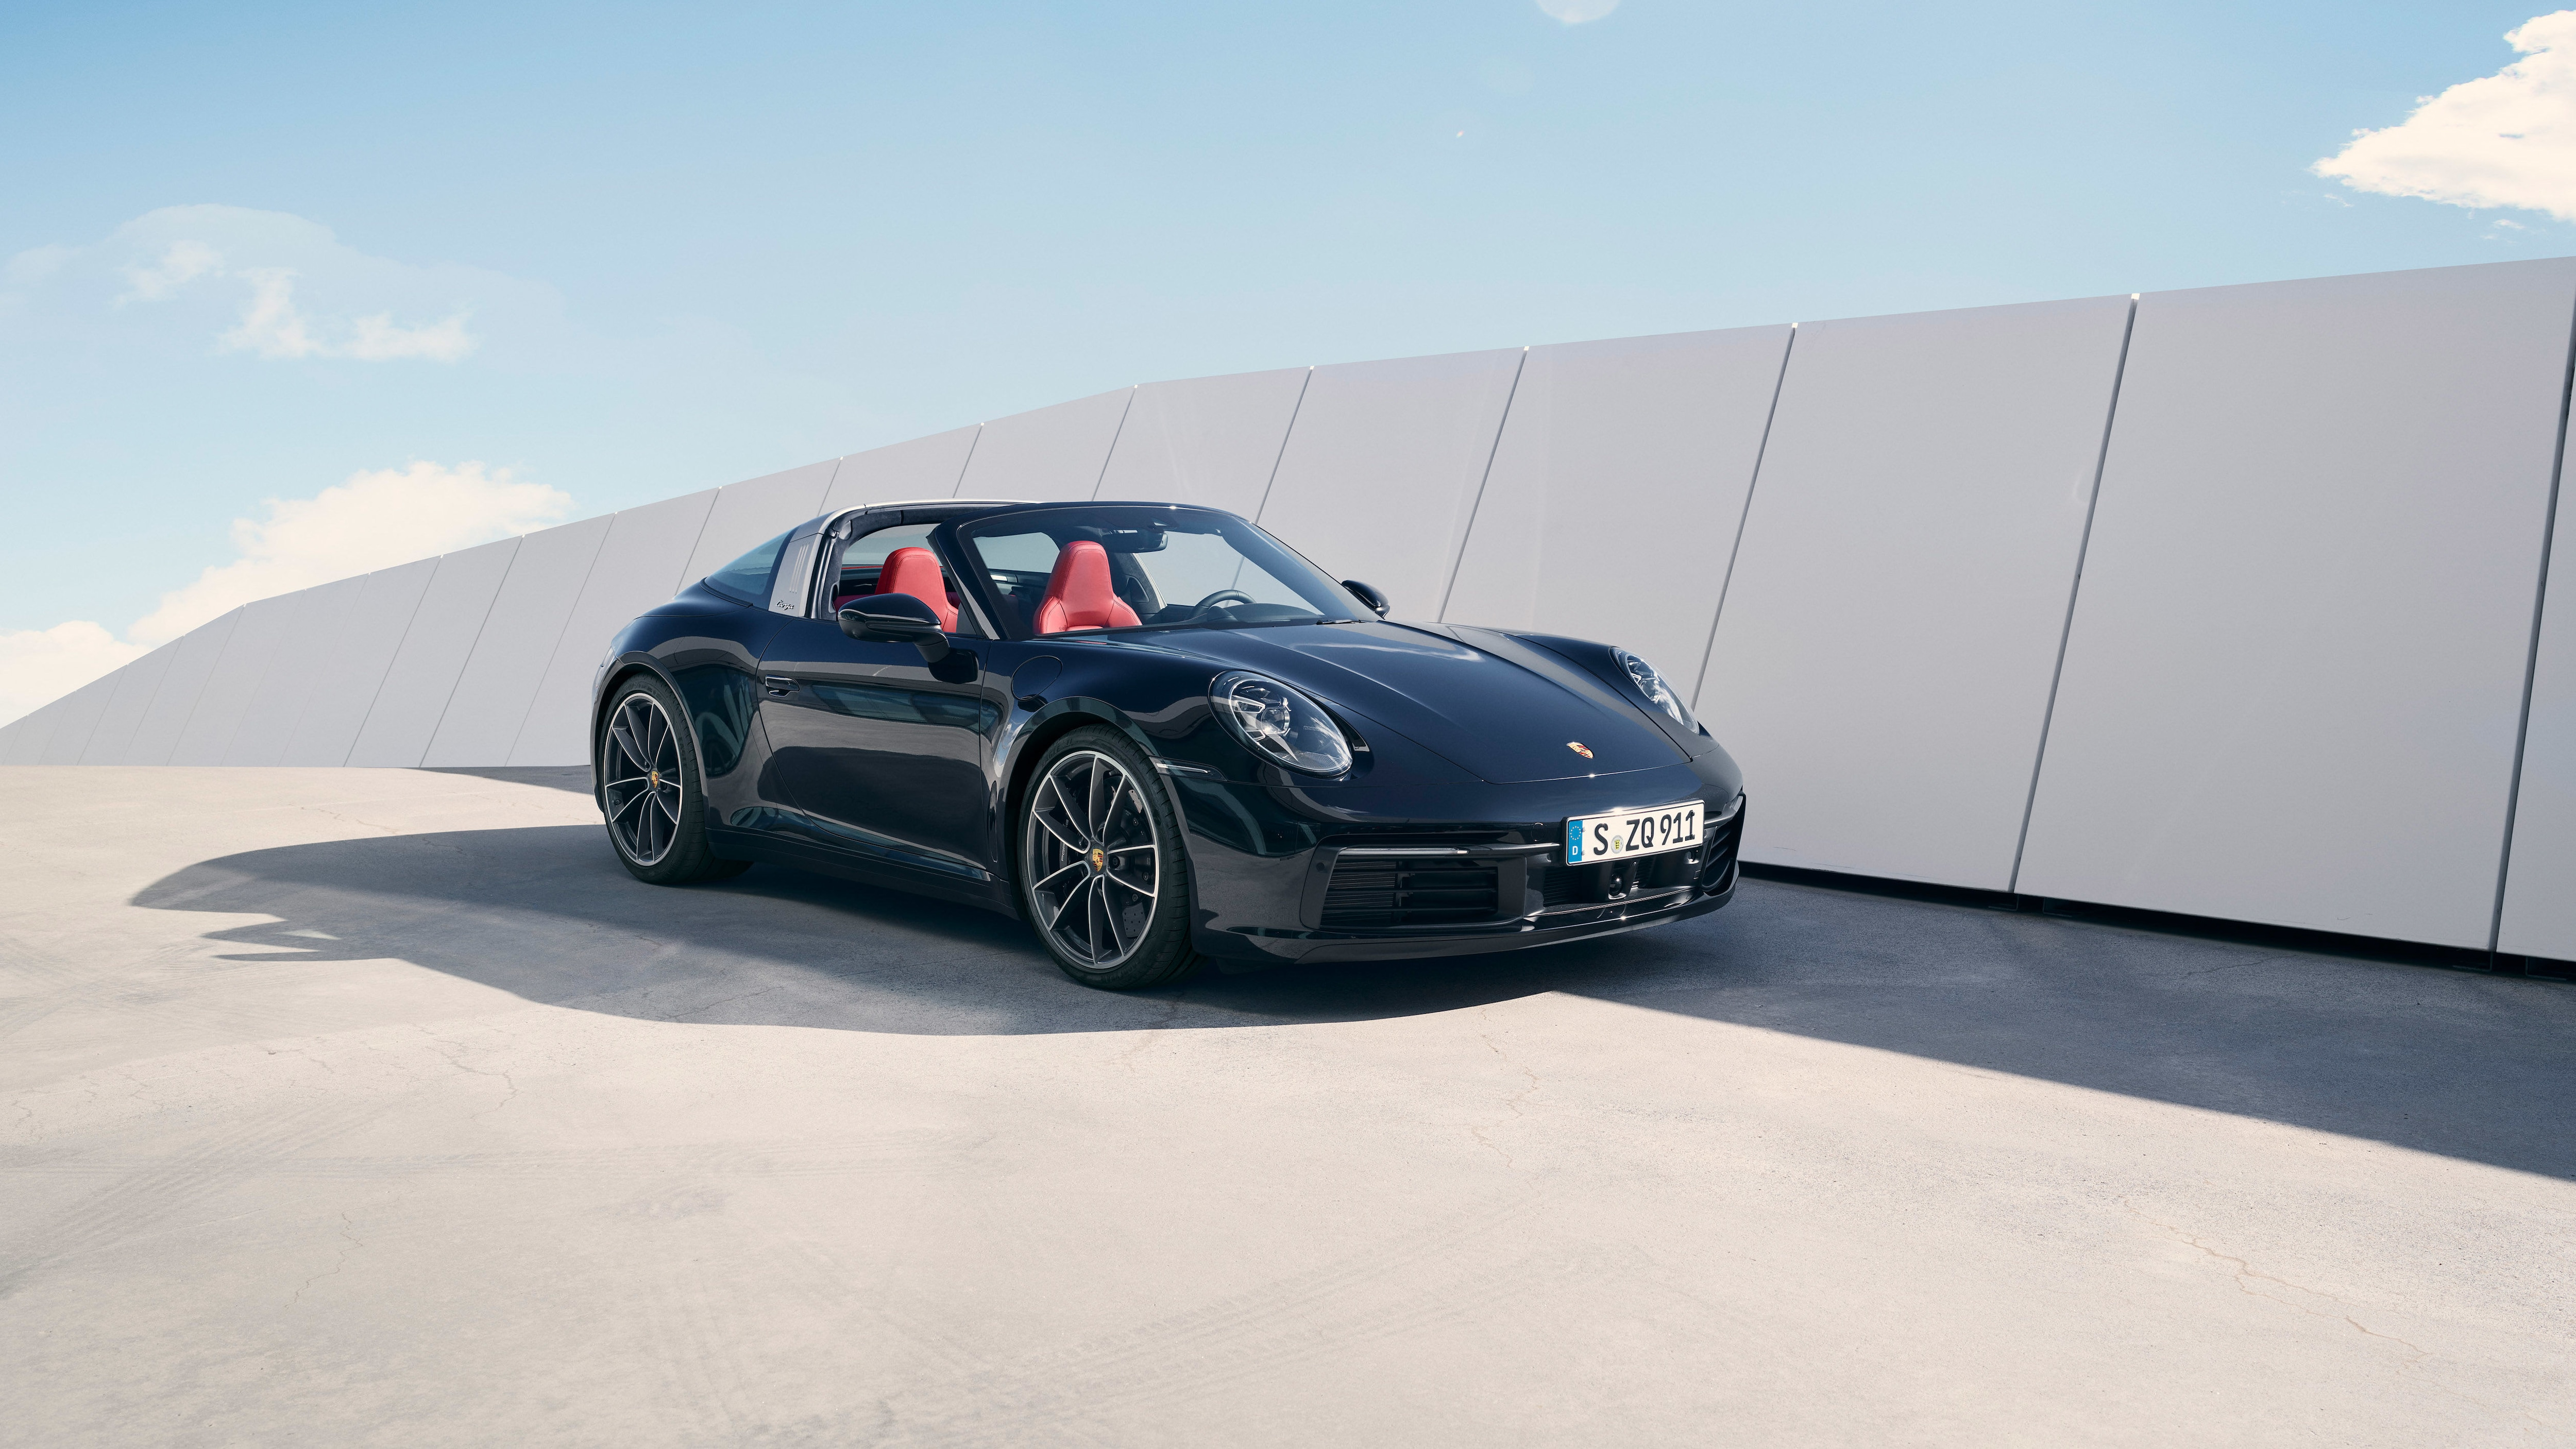 Compared to its predecessors, 911 Targa's body features significantly more pronounced wheel housings at the front.